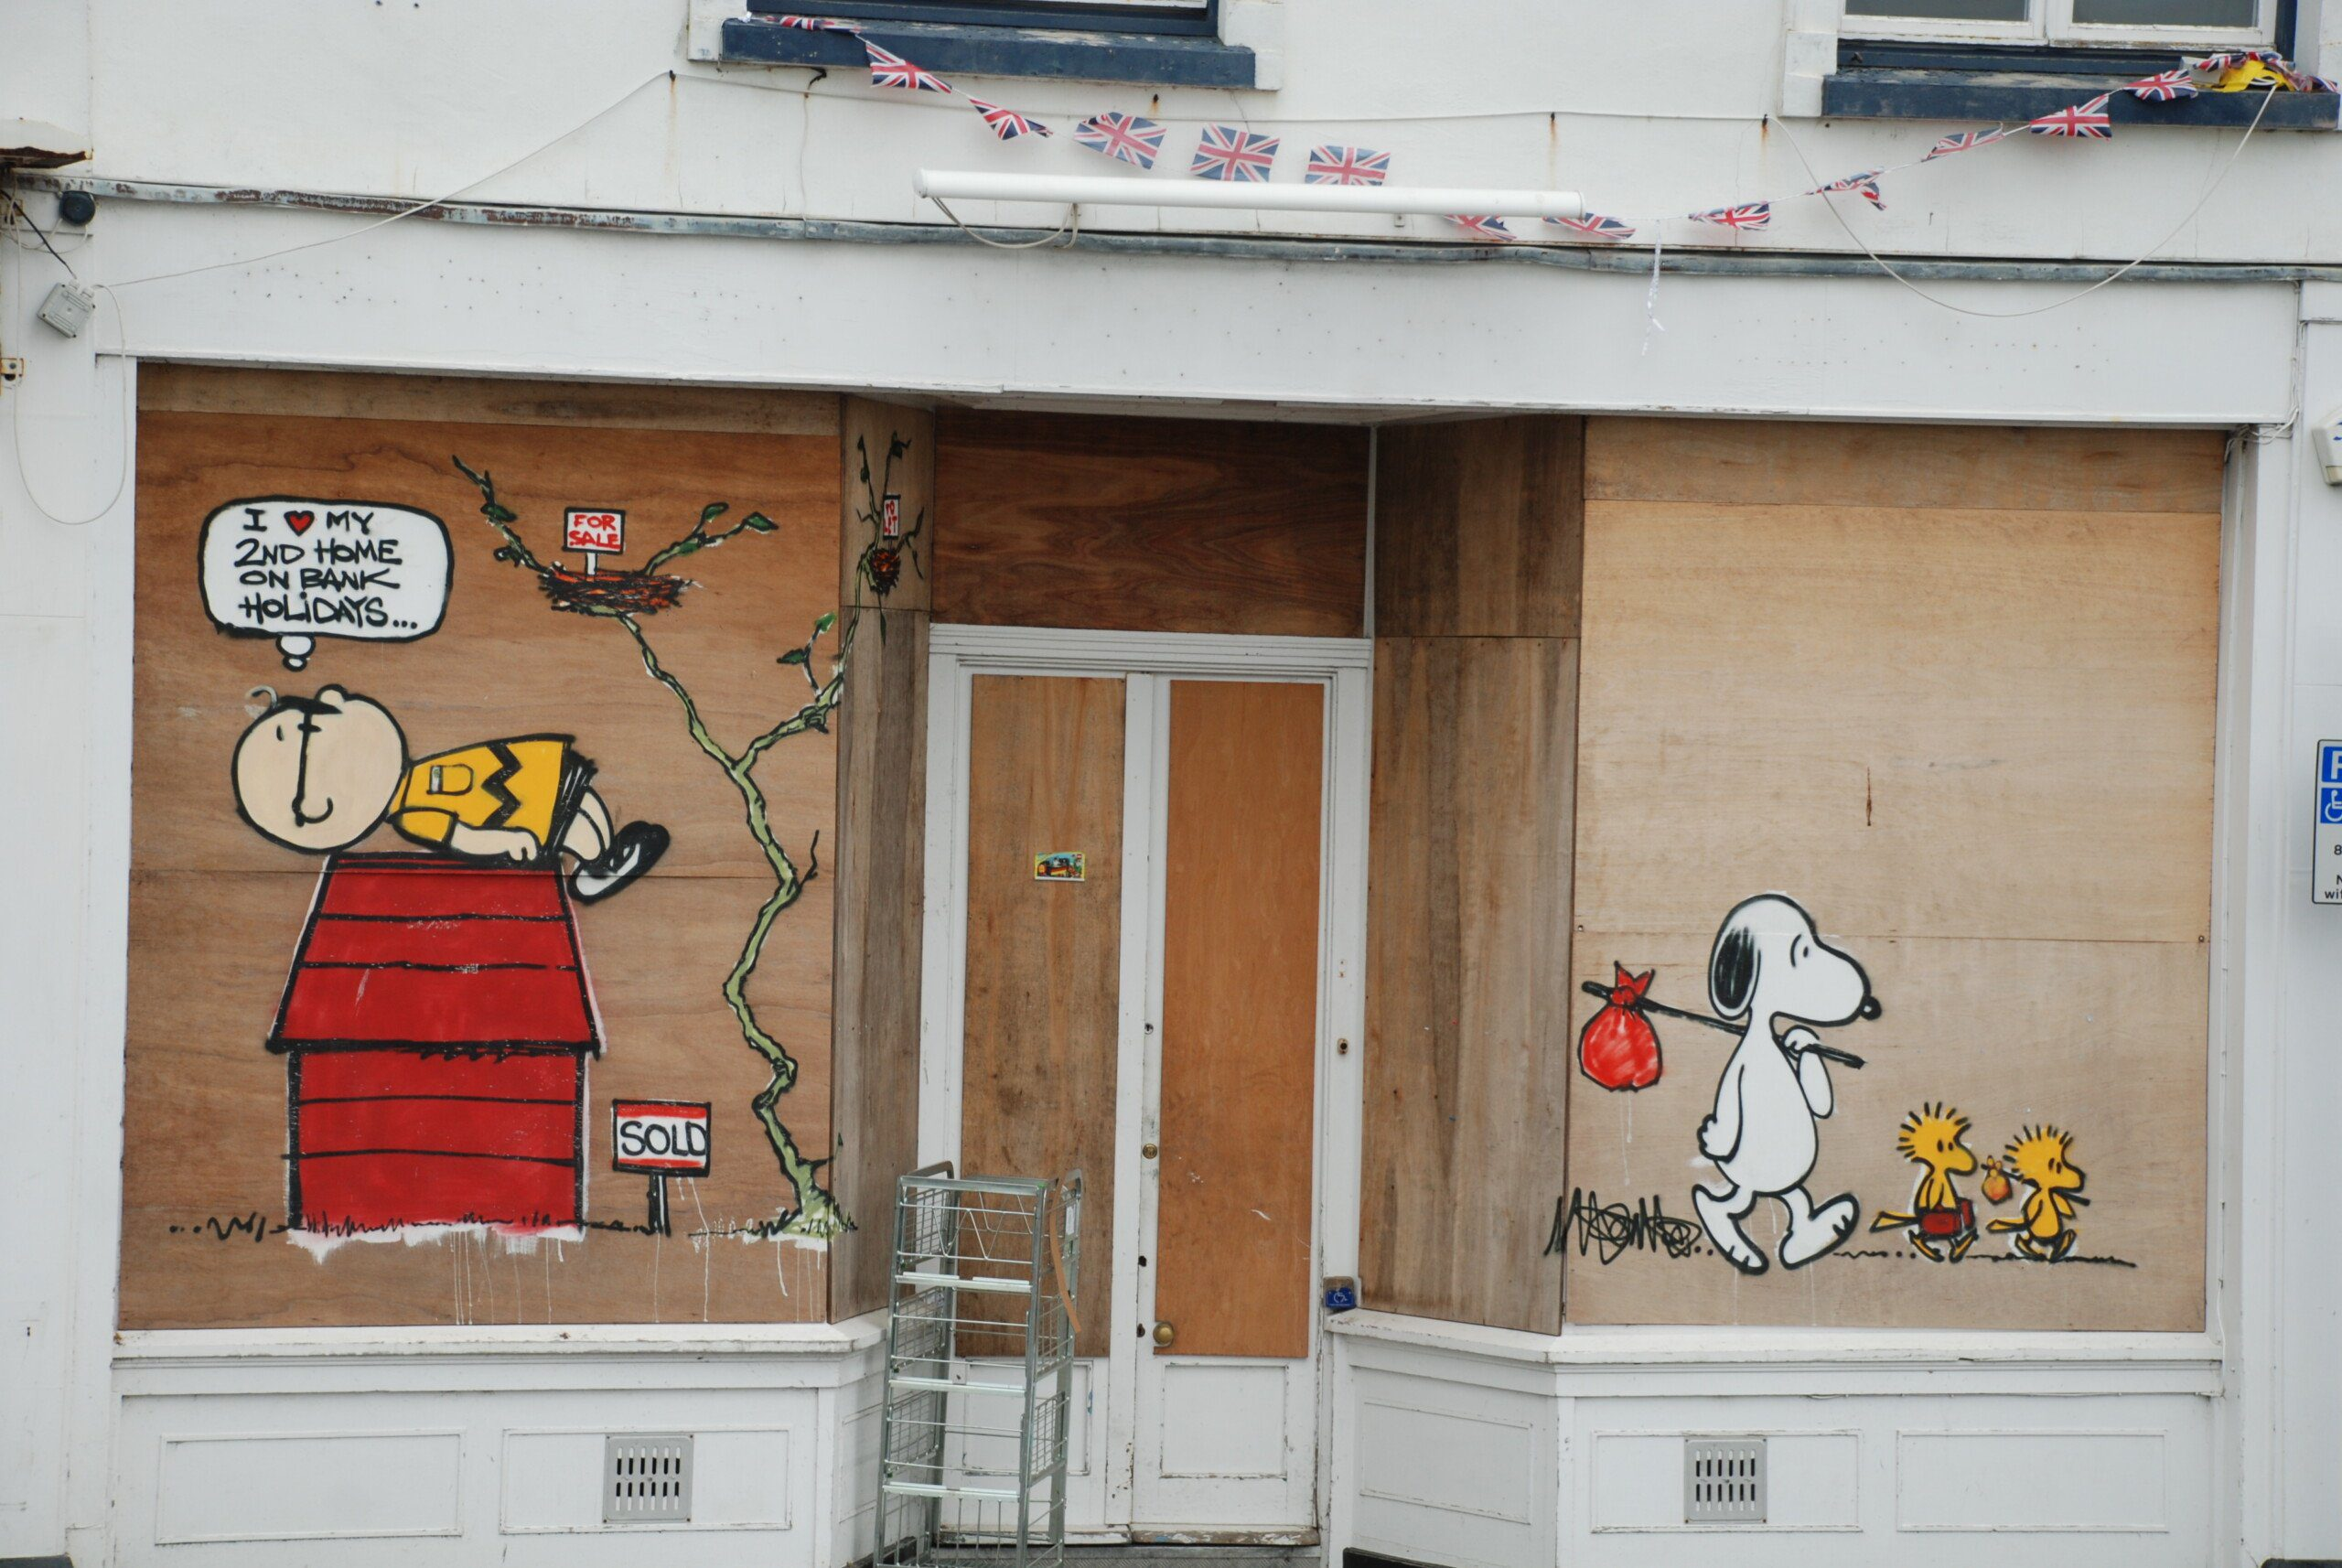 A boarded-up shopfront with grafitti of Charlie Brown lying on Snoopy's kennel, and Snoopy walking away with two Woodstocks. Charlie Brown is saying 'I love my 2nd home on Bank Holidays'